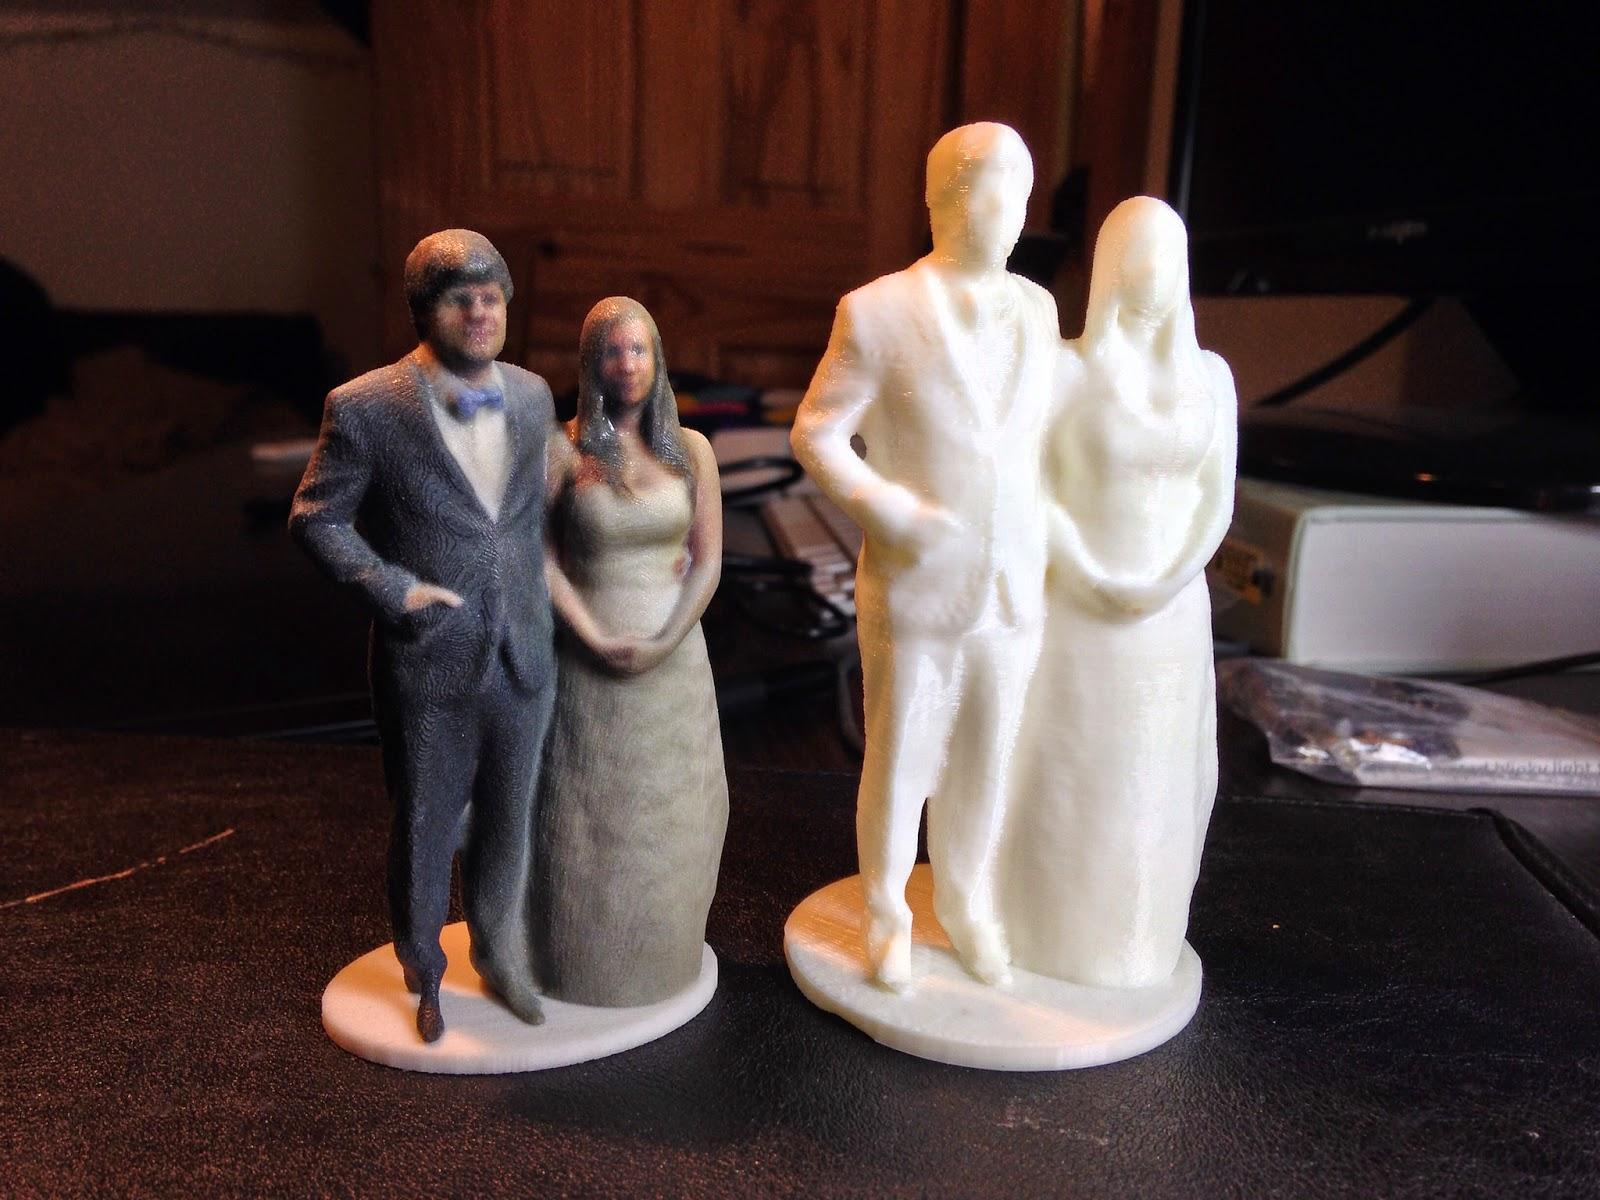 Bride Hacks Shapify Code to Create Perfect Wedding Cake Topper  3DPrintcom  The Voice of 3D